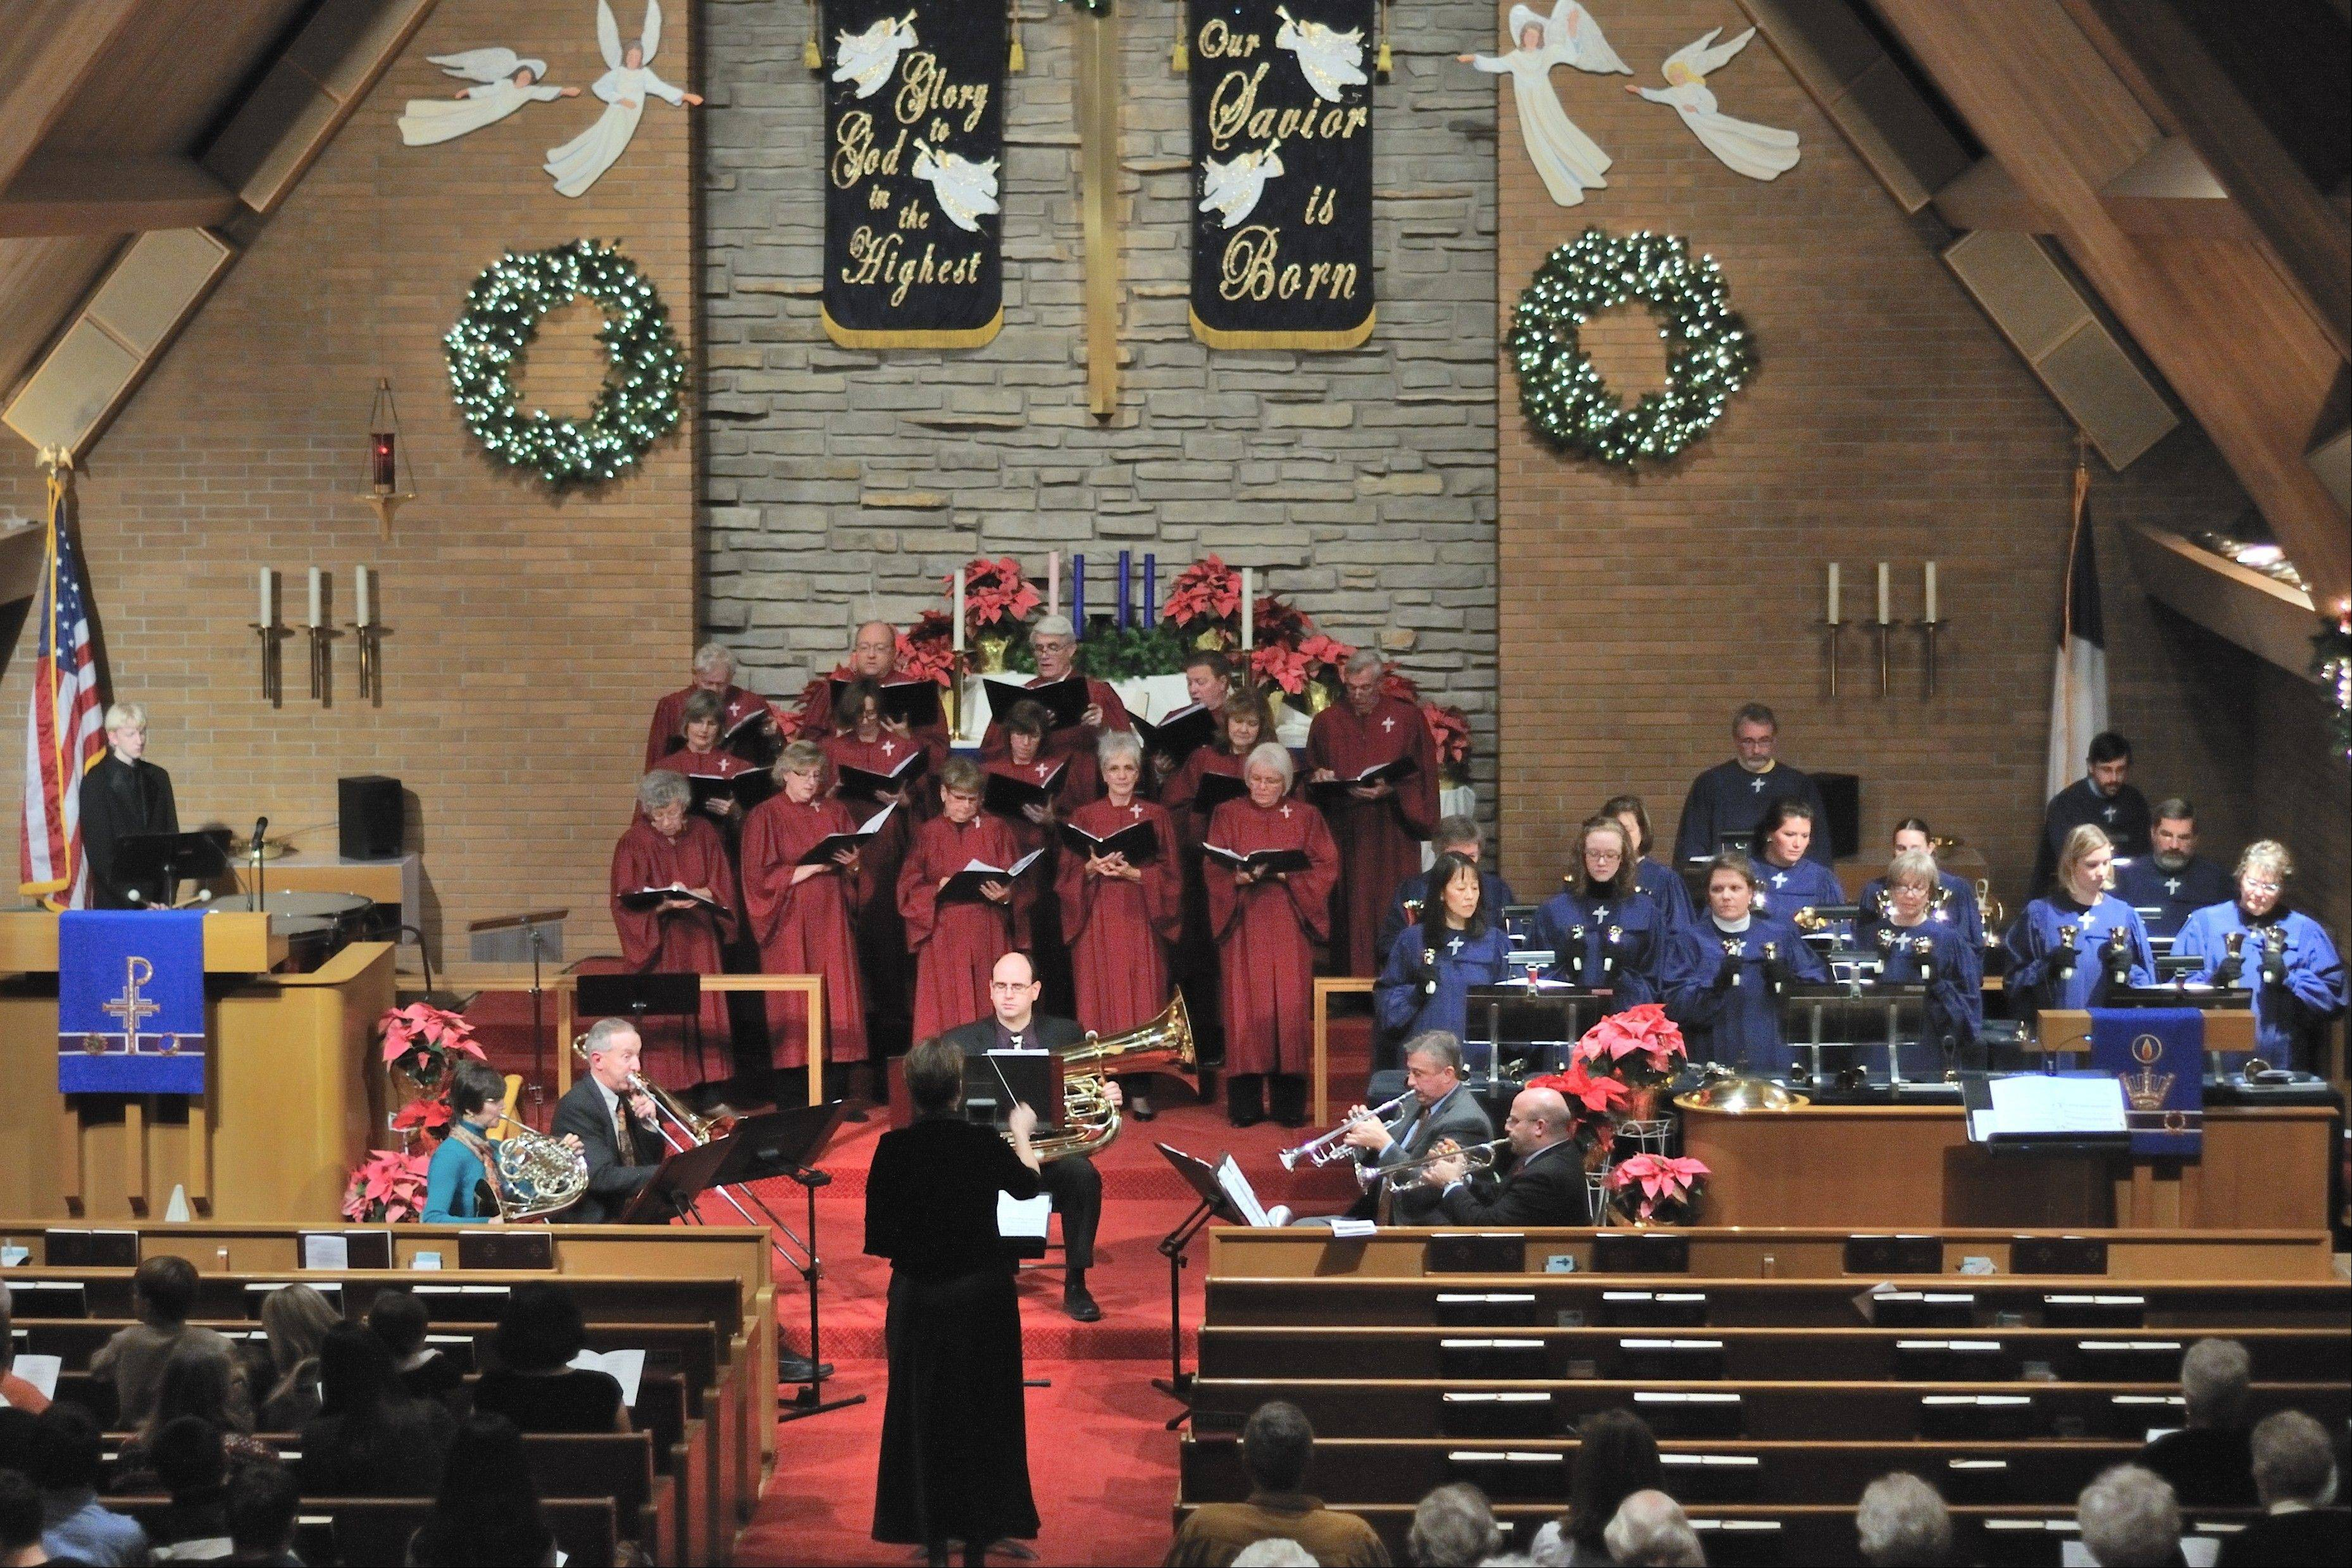 A Christmas concert of carols and readings of the Advent and Christmas season will be presented at 4 p.m. Sunday, Dec. 9, at St. Matthew Lutheran Church in Barrington.